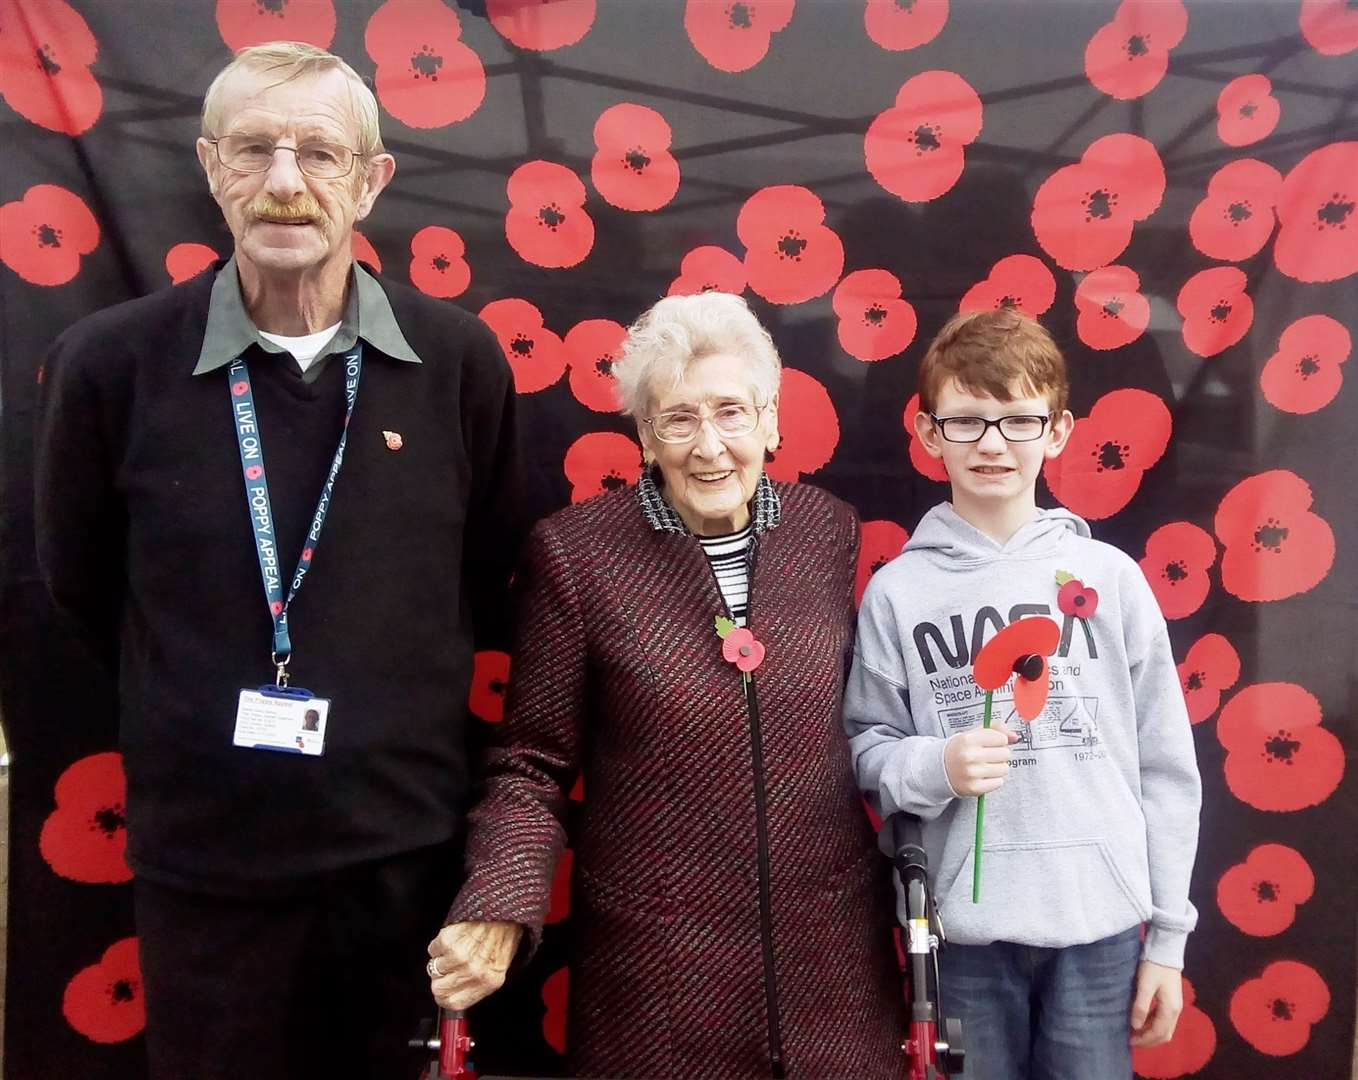 Barry Bishop, Haverhill's Poppy Appeal organiser, Betty Sizer, who will be pleased to receive donations at Iceland's store and Sebastian Thornton, who will be collecting at Sainsbury's store on his birthday